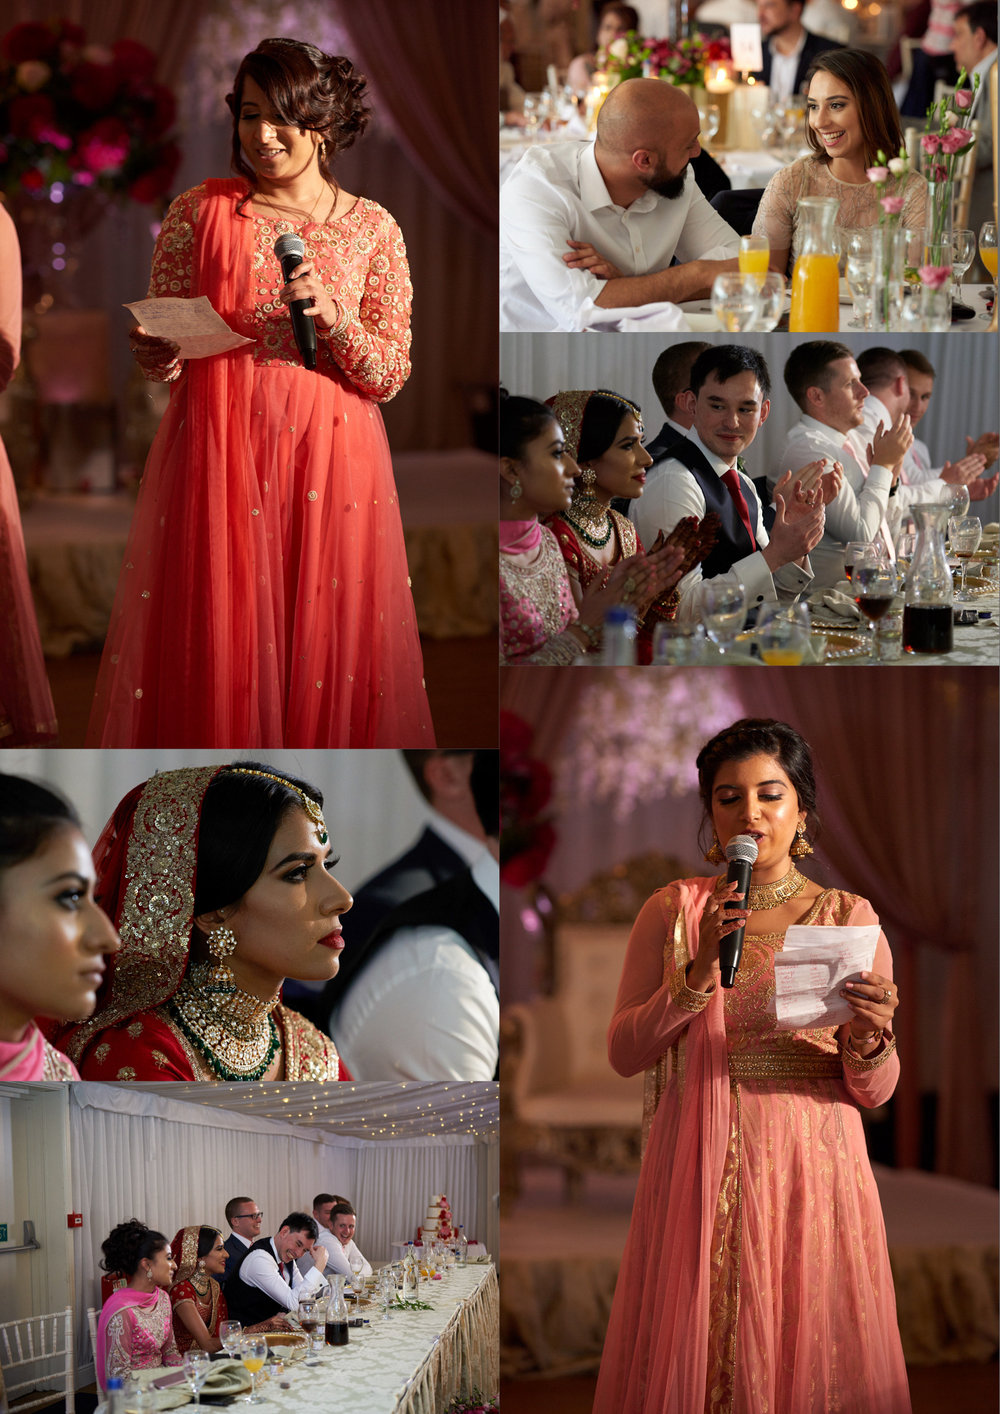 Wedding photographer-39b.jpg